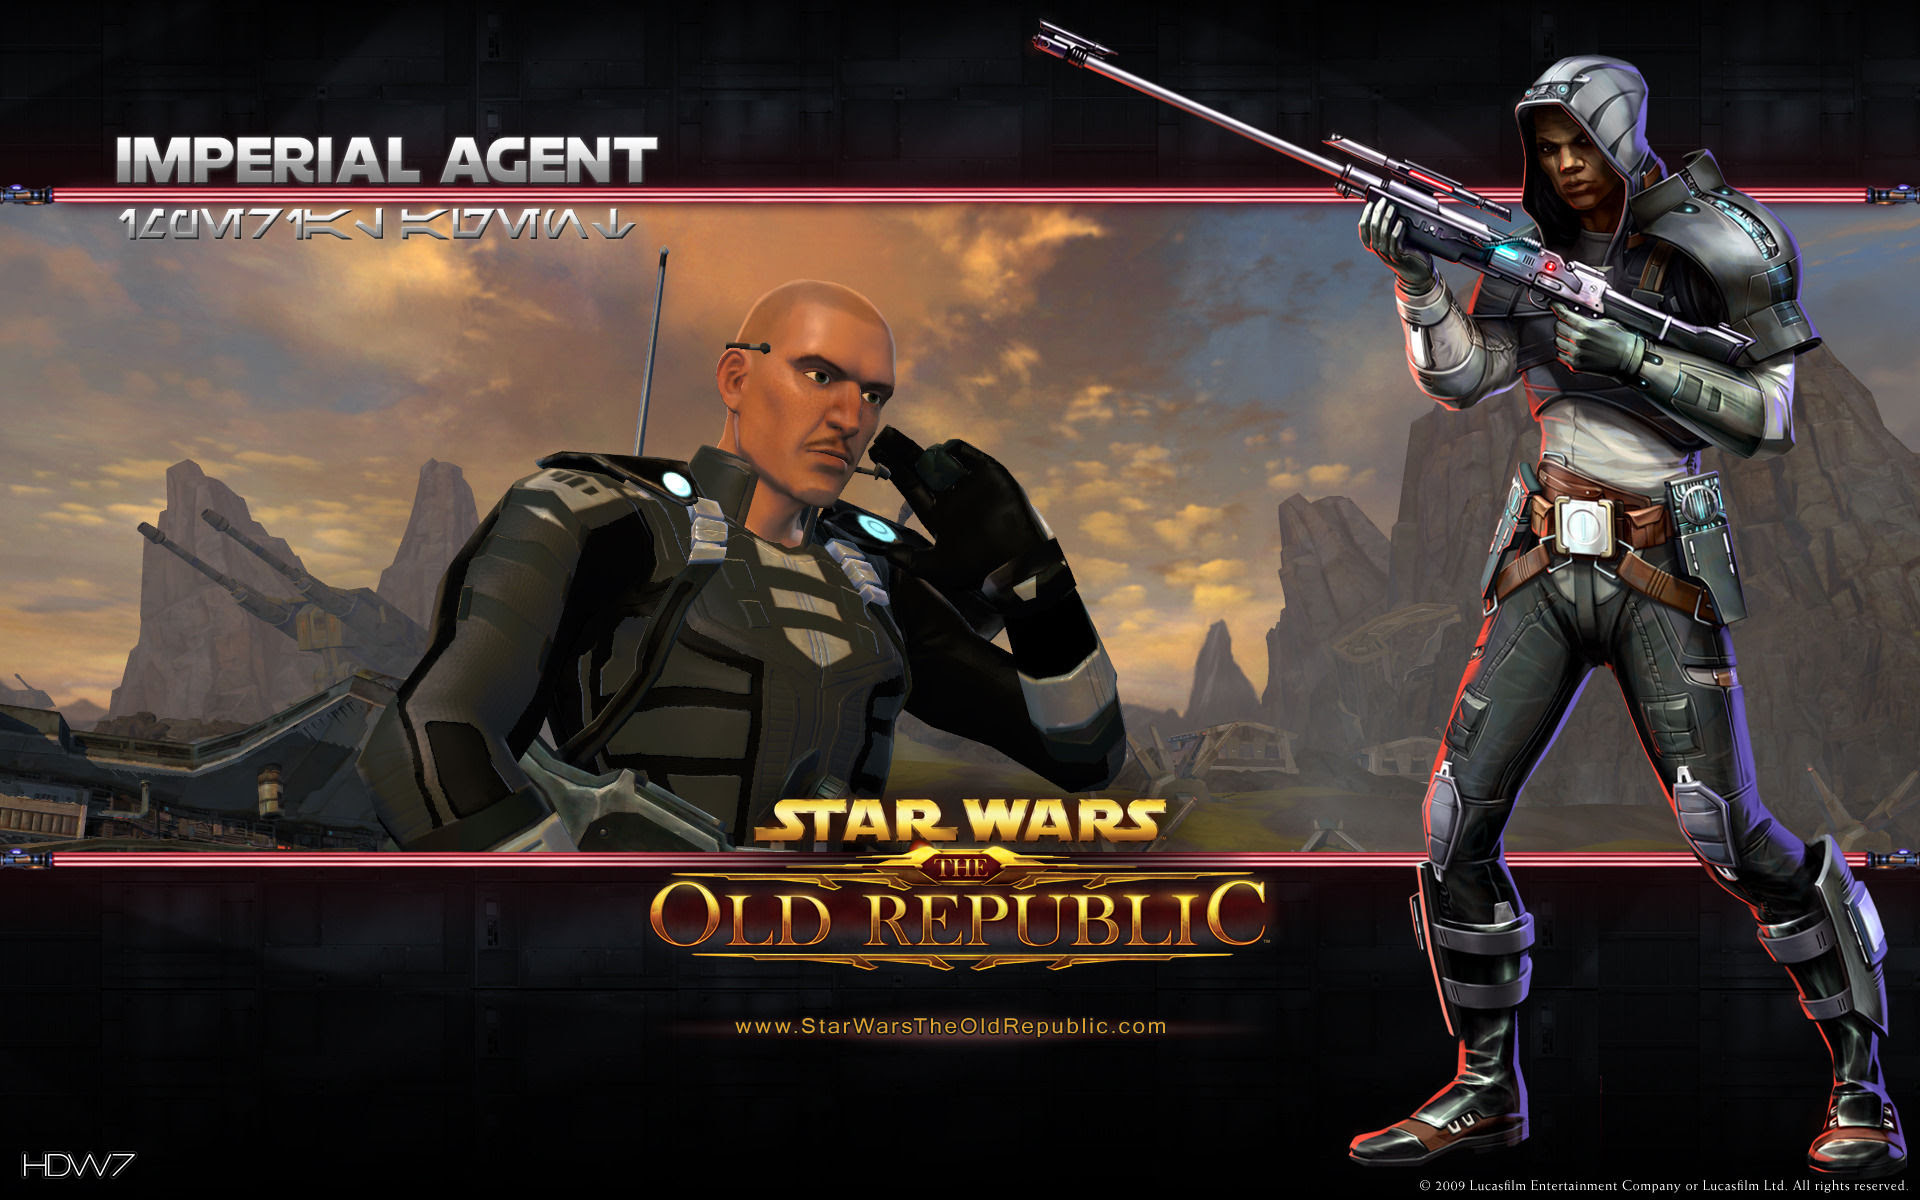 Star Wars The Old Republic Imperial Agent Widescreen Wallpaper